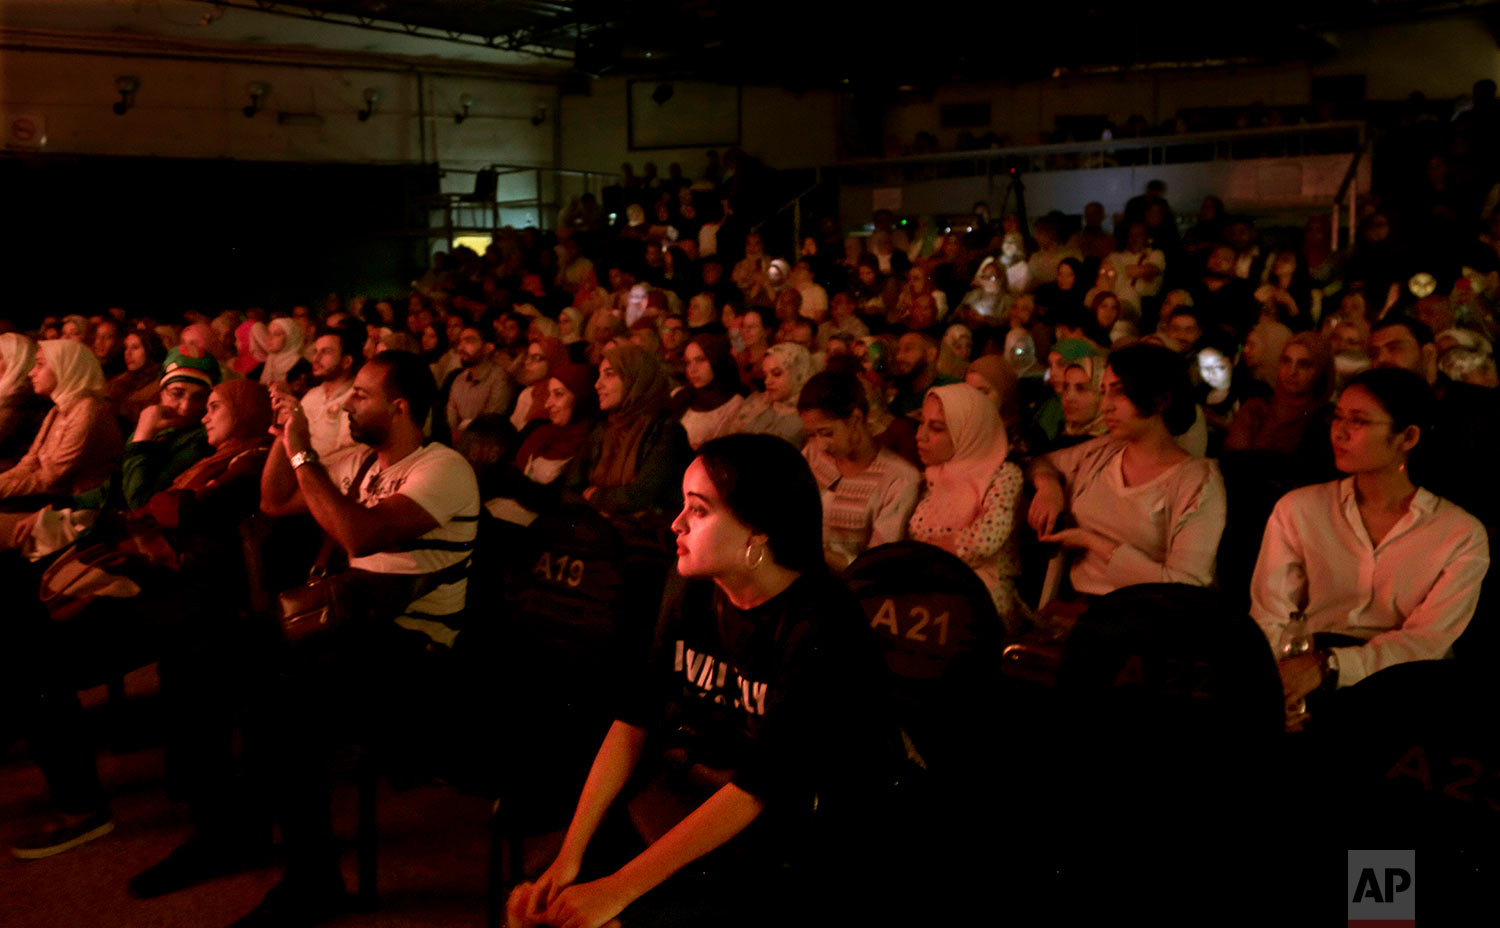 People watch a marionette performance showing Umm Kalthoum, the most famed singer of classical Arabic music, marionettes made by Egyptian artist Mohamed Fawzi Bakkar, at the El Sawy Cultural Center, in Cairo, Egypt, May 3, 2018 . (AP Photo/Nariman El-Mofty)